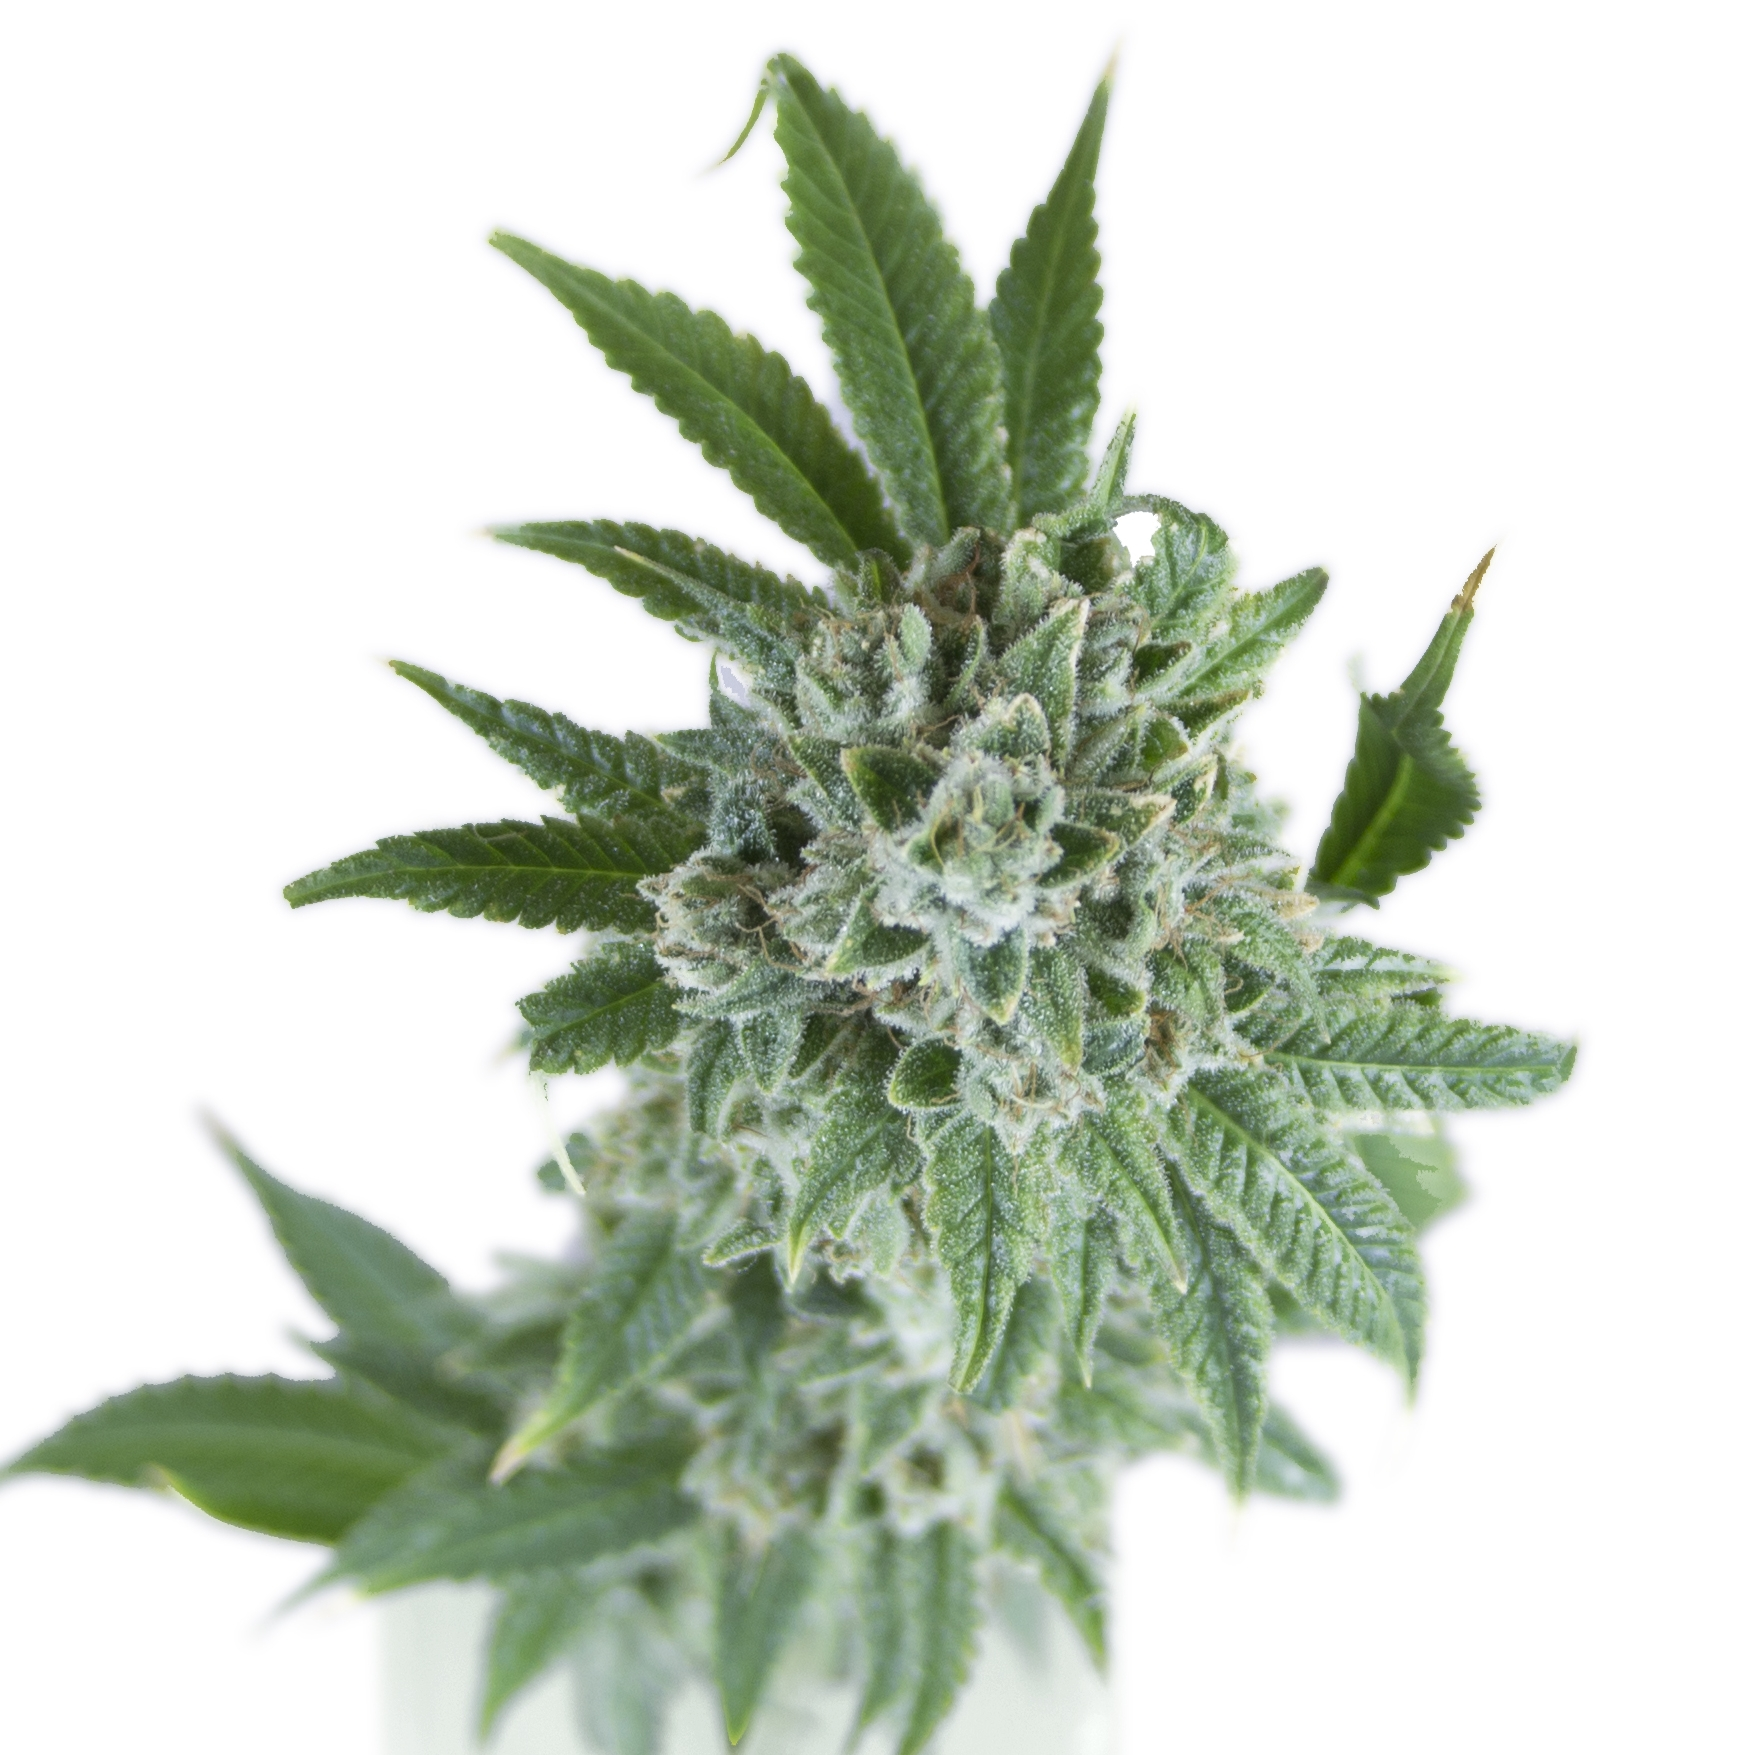 SuperSour_Flower_1824.jpg